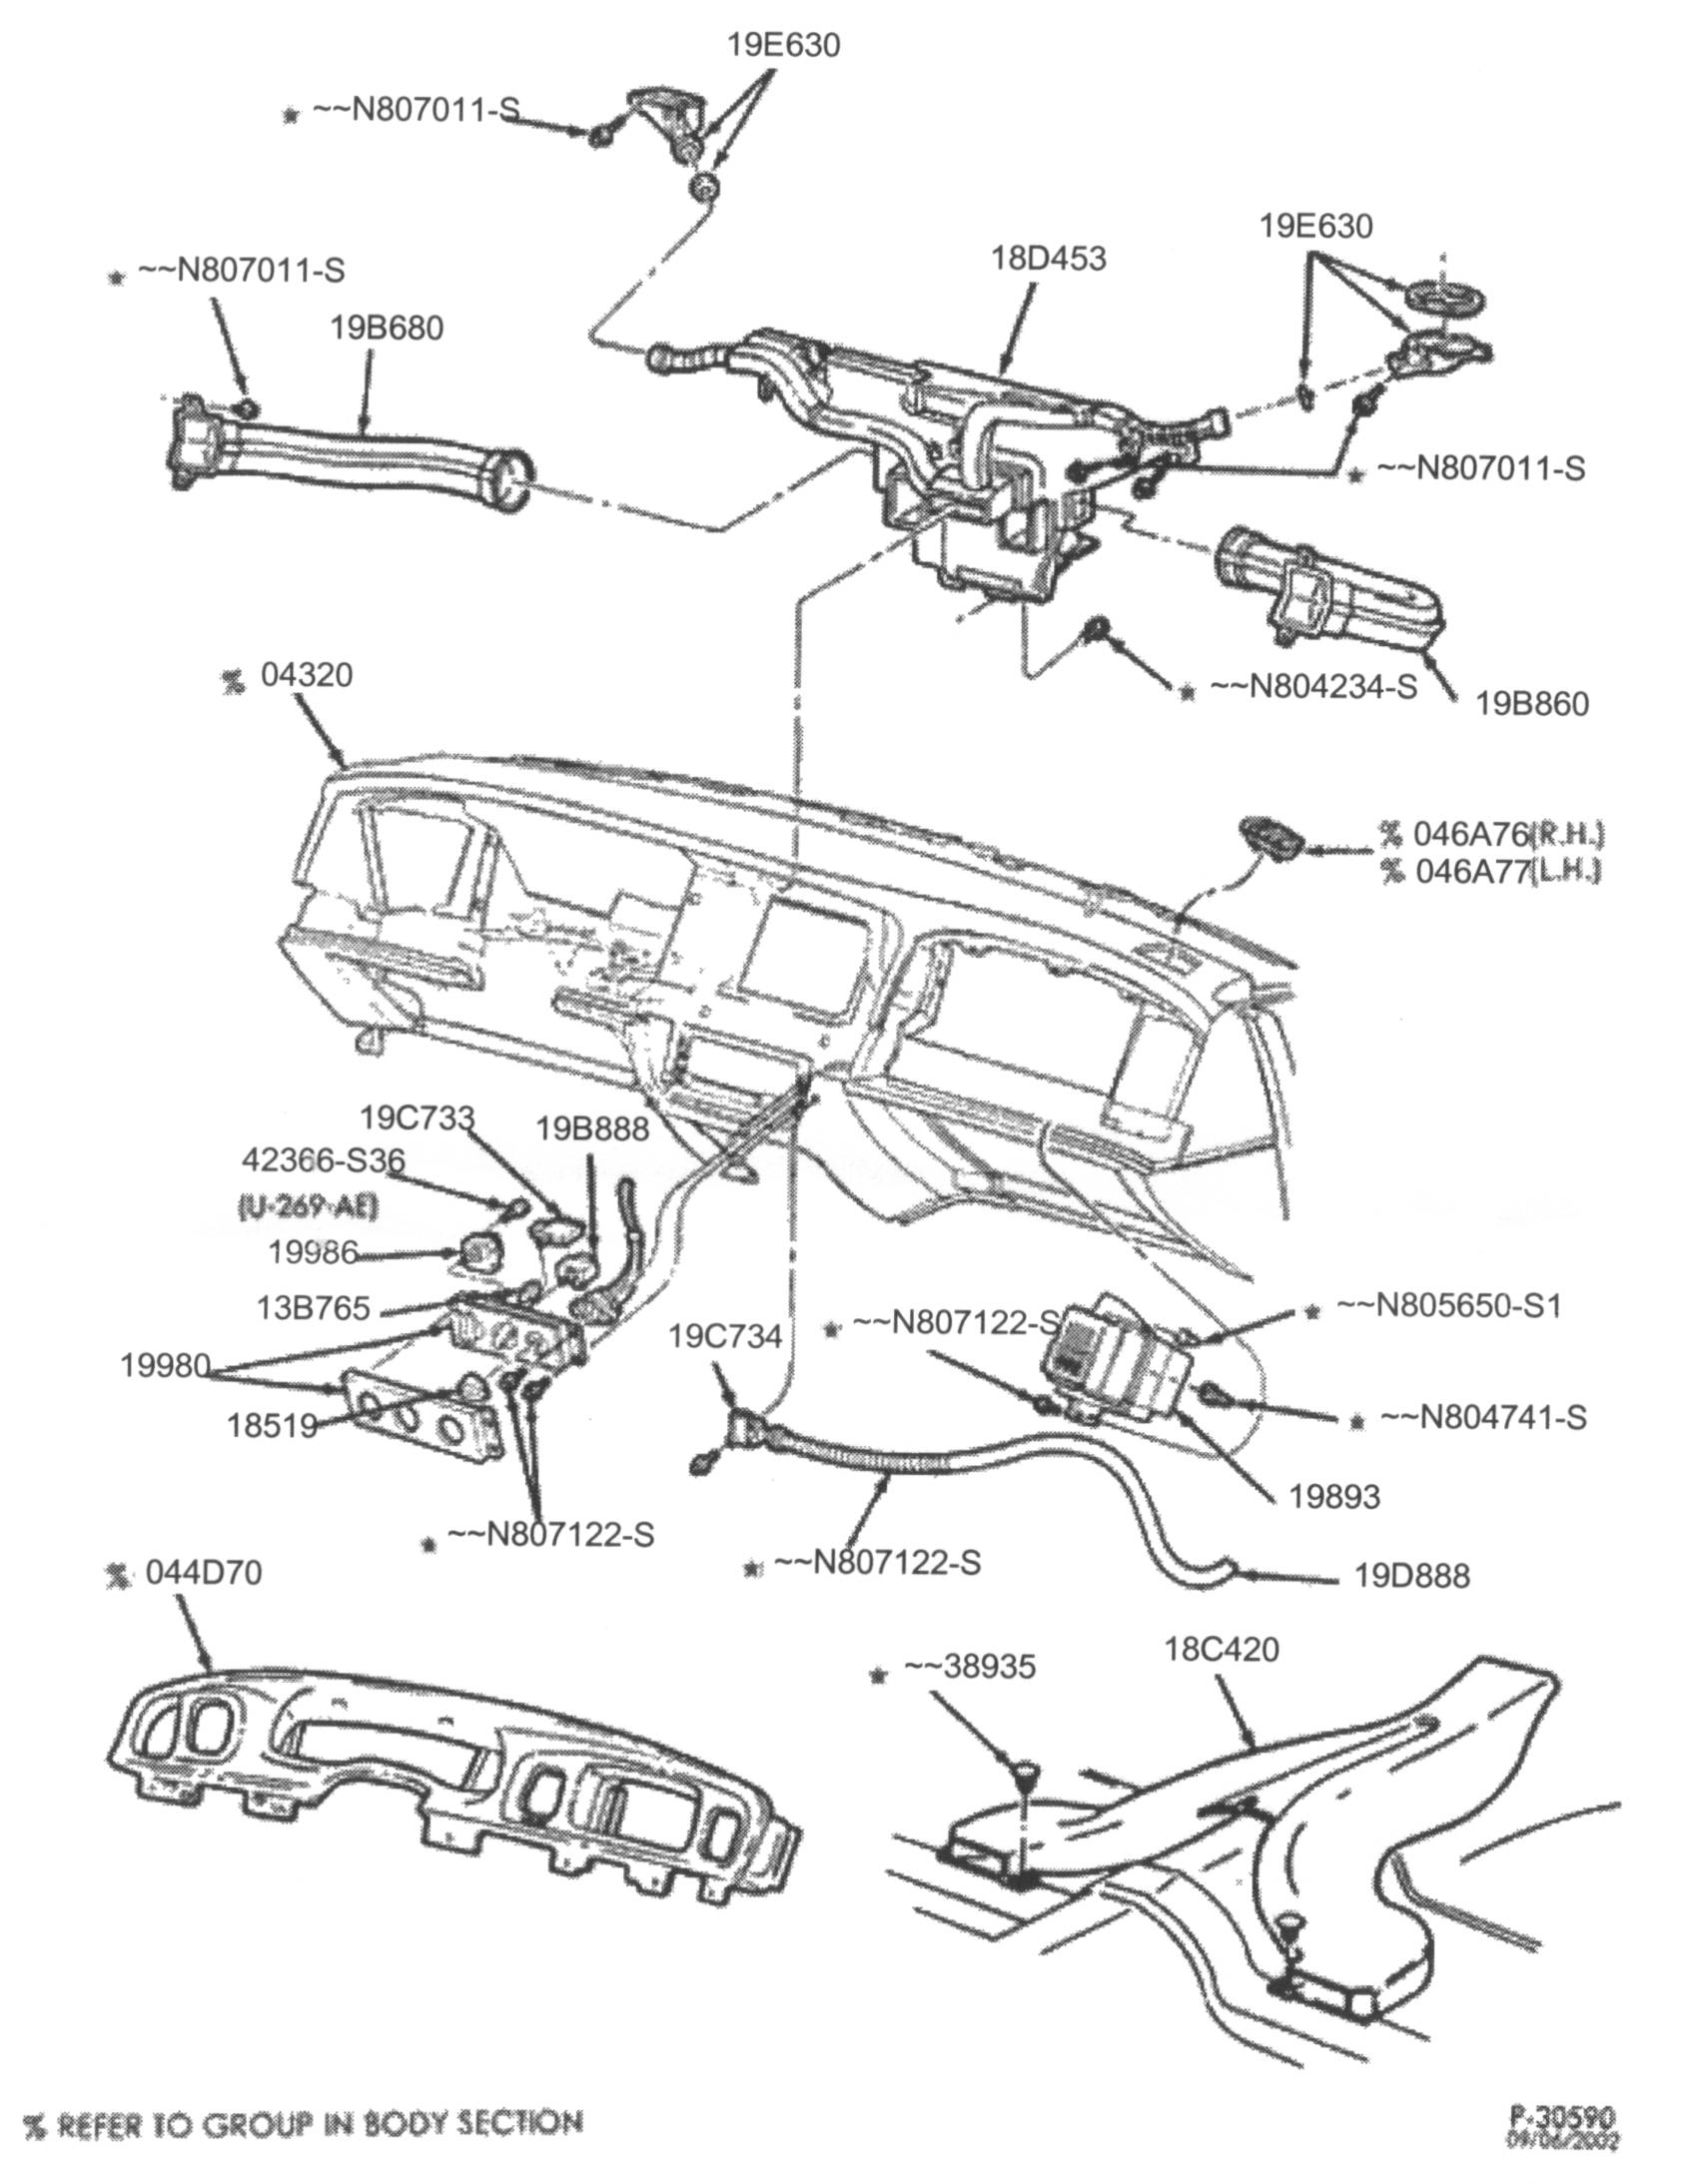 Ford Crown Victoria Stereo Radio Installation Tidbits 1993 Lincoln Town Car Wiring Diagram Free Picture Look To Their Install A Few Have Swapped In Radios From Other Vehicles Such As Explorers Econoline Vans And Cars